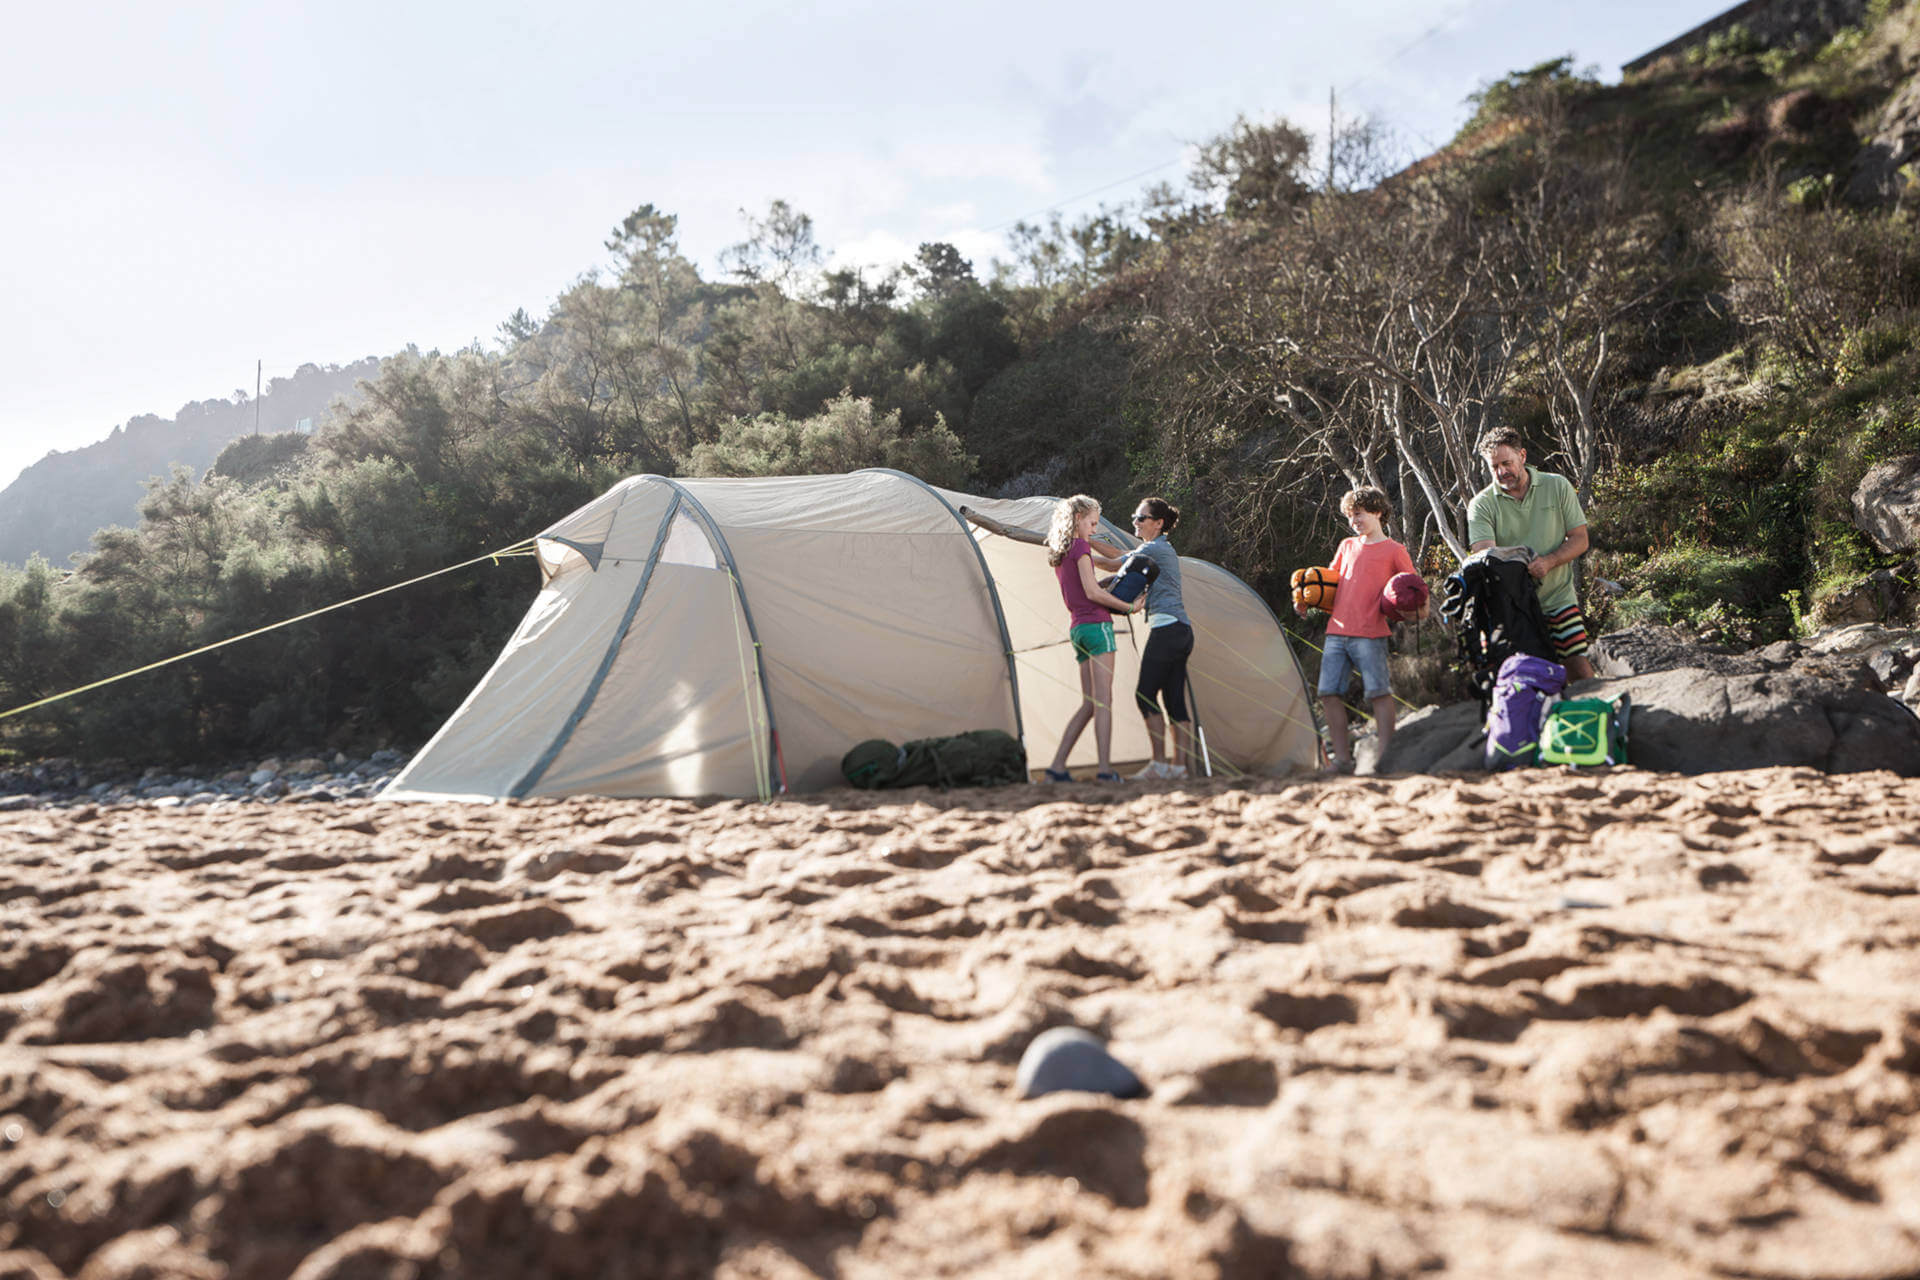 Campsites in Germany - Family camping on the beach.